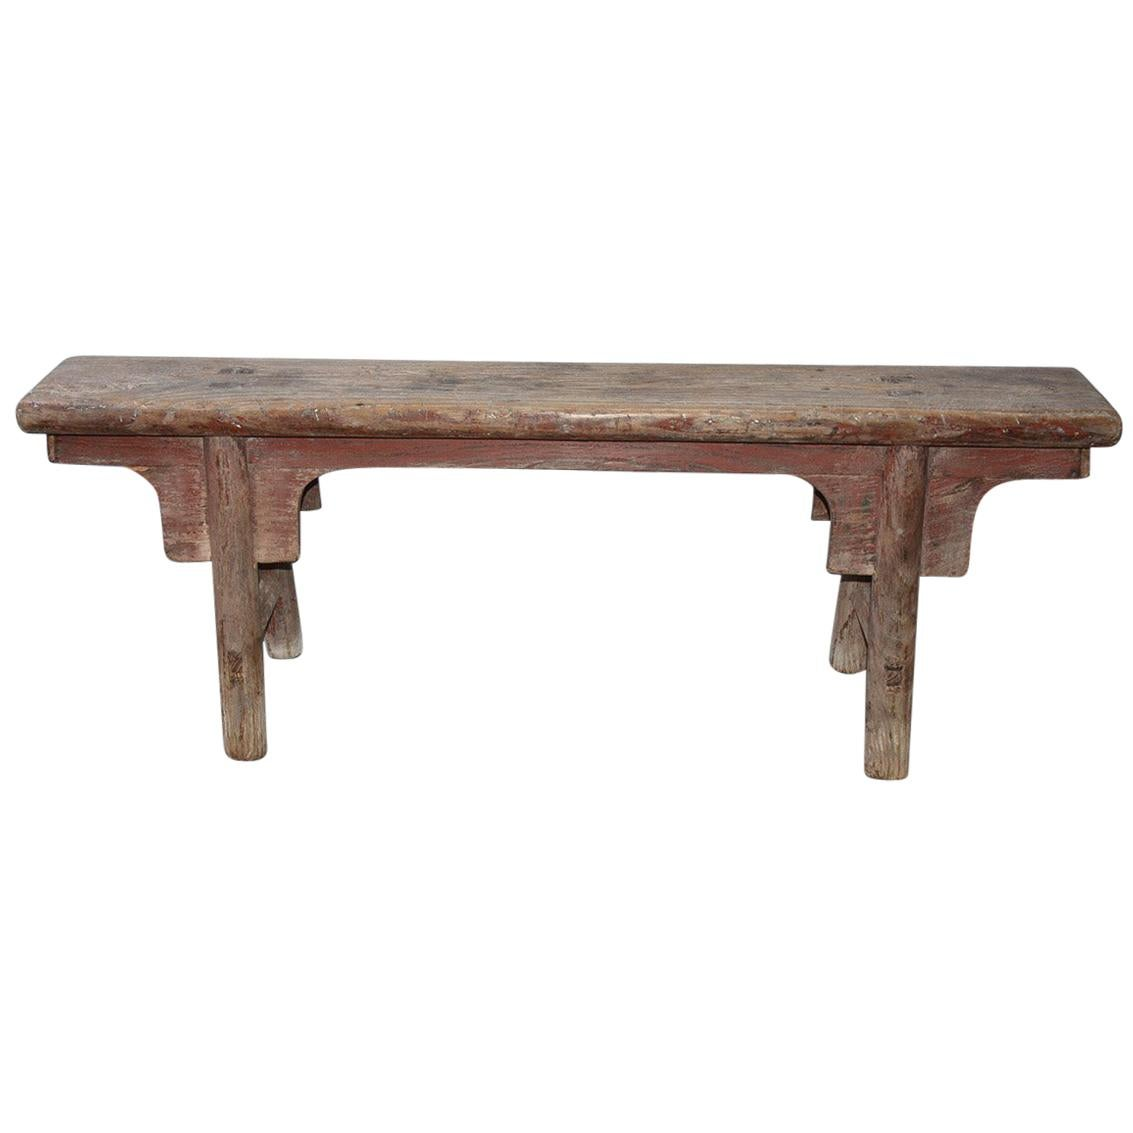 Rustic Chinese Provincial Elm Wood Bench